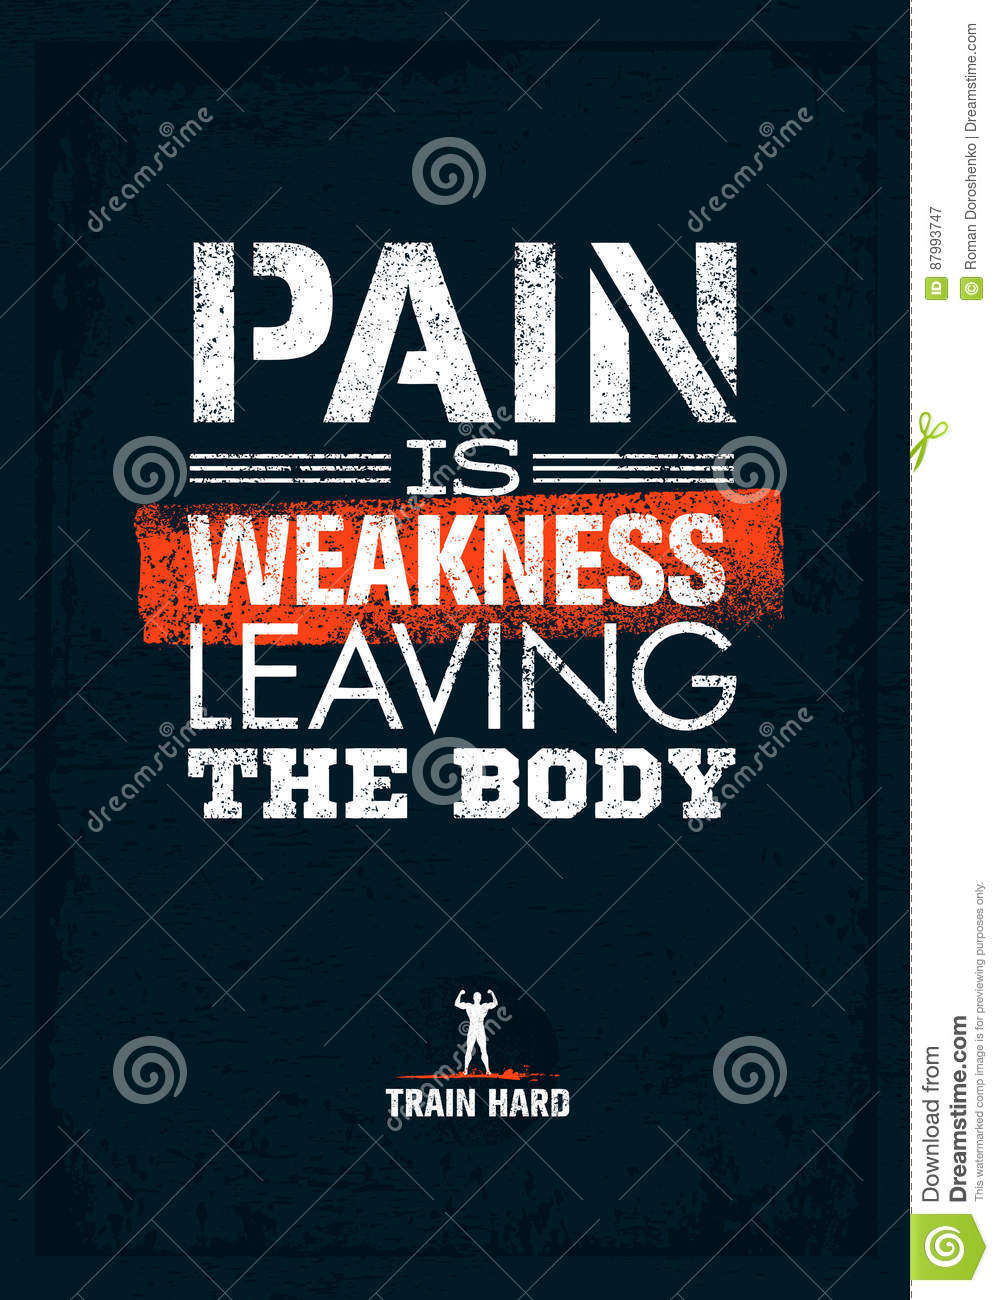 Pain Is Weakness Leaving The Body Gym And Fitness Motivation Quote Creative Vector Typography Poster Concept Stock Vector Illustration Of Exercise Sport 87993747